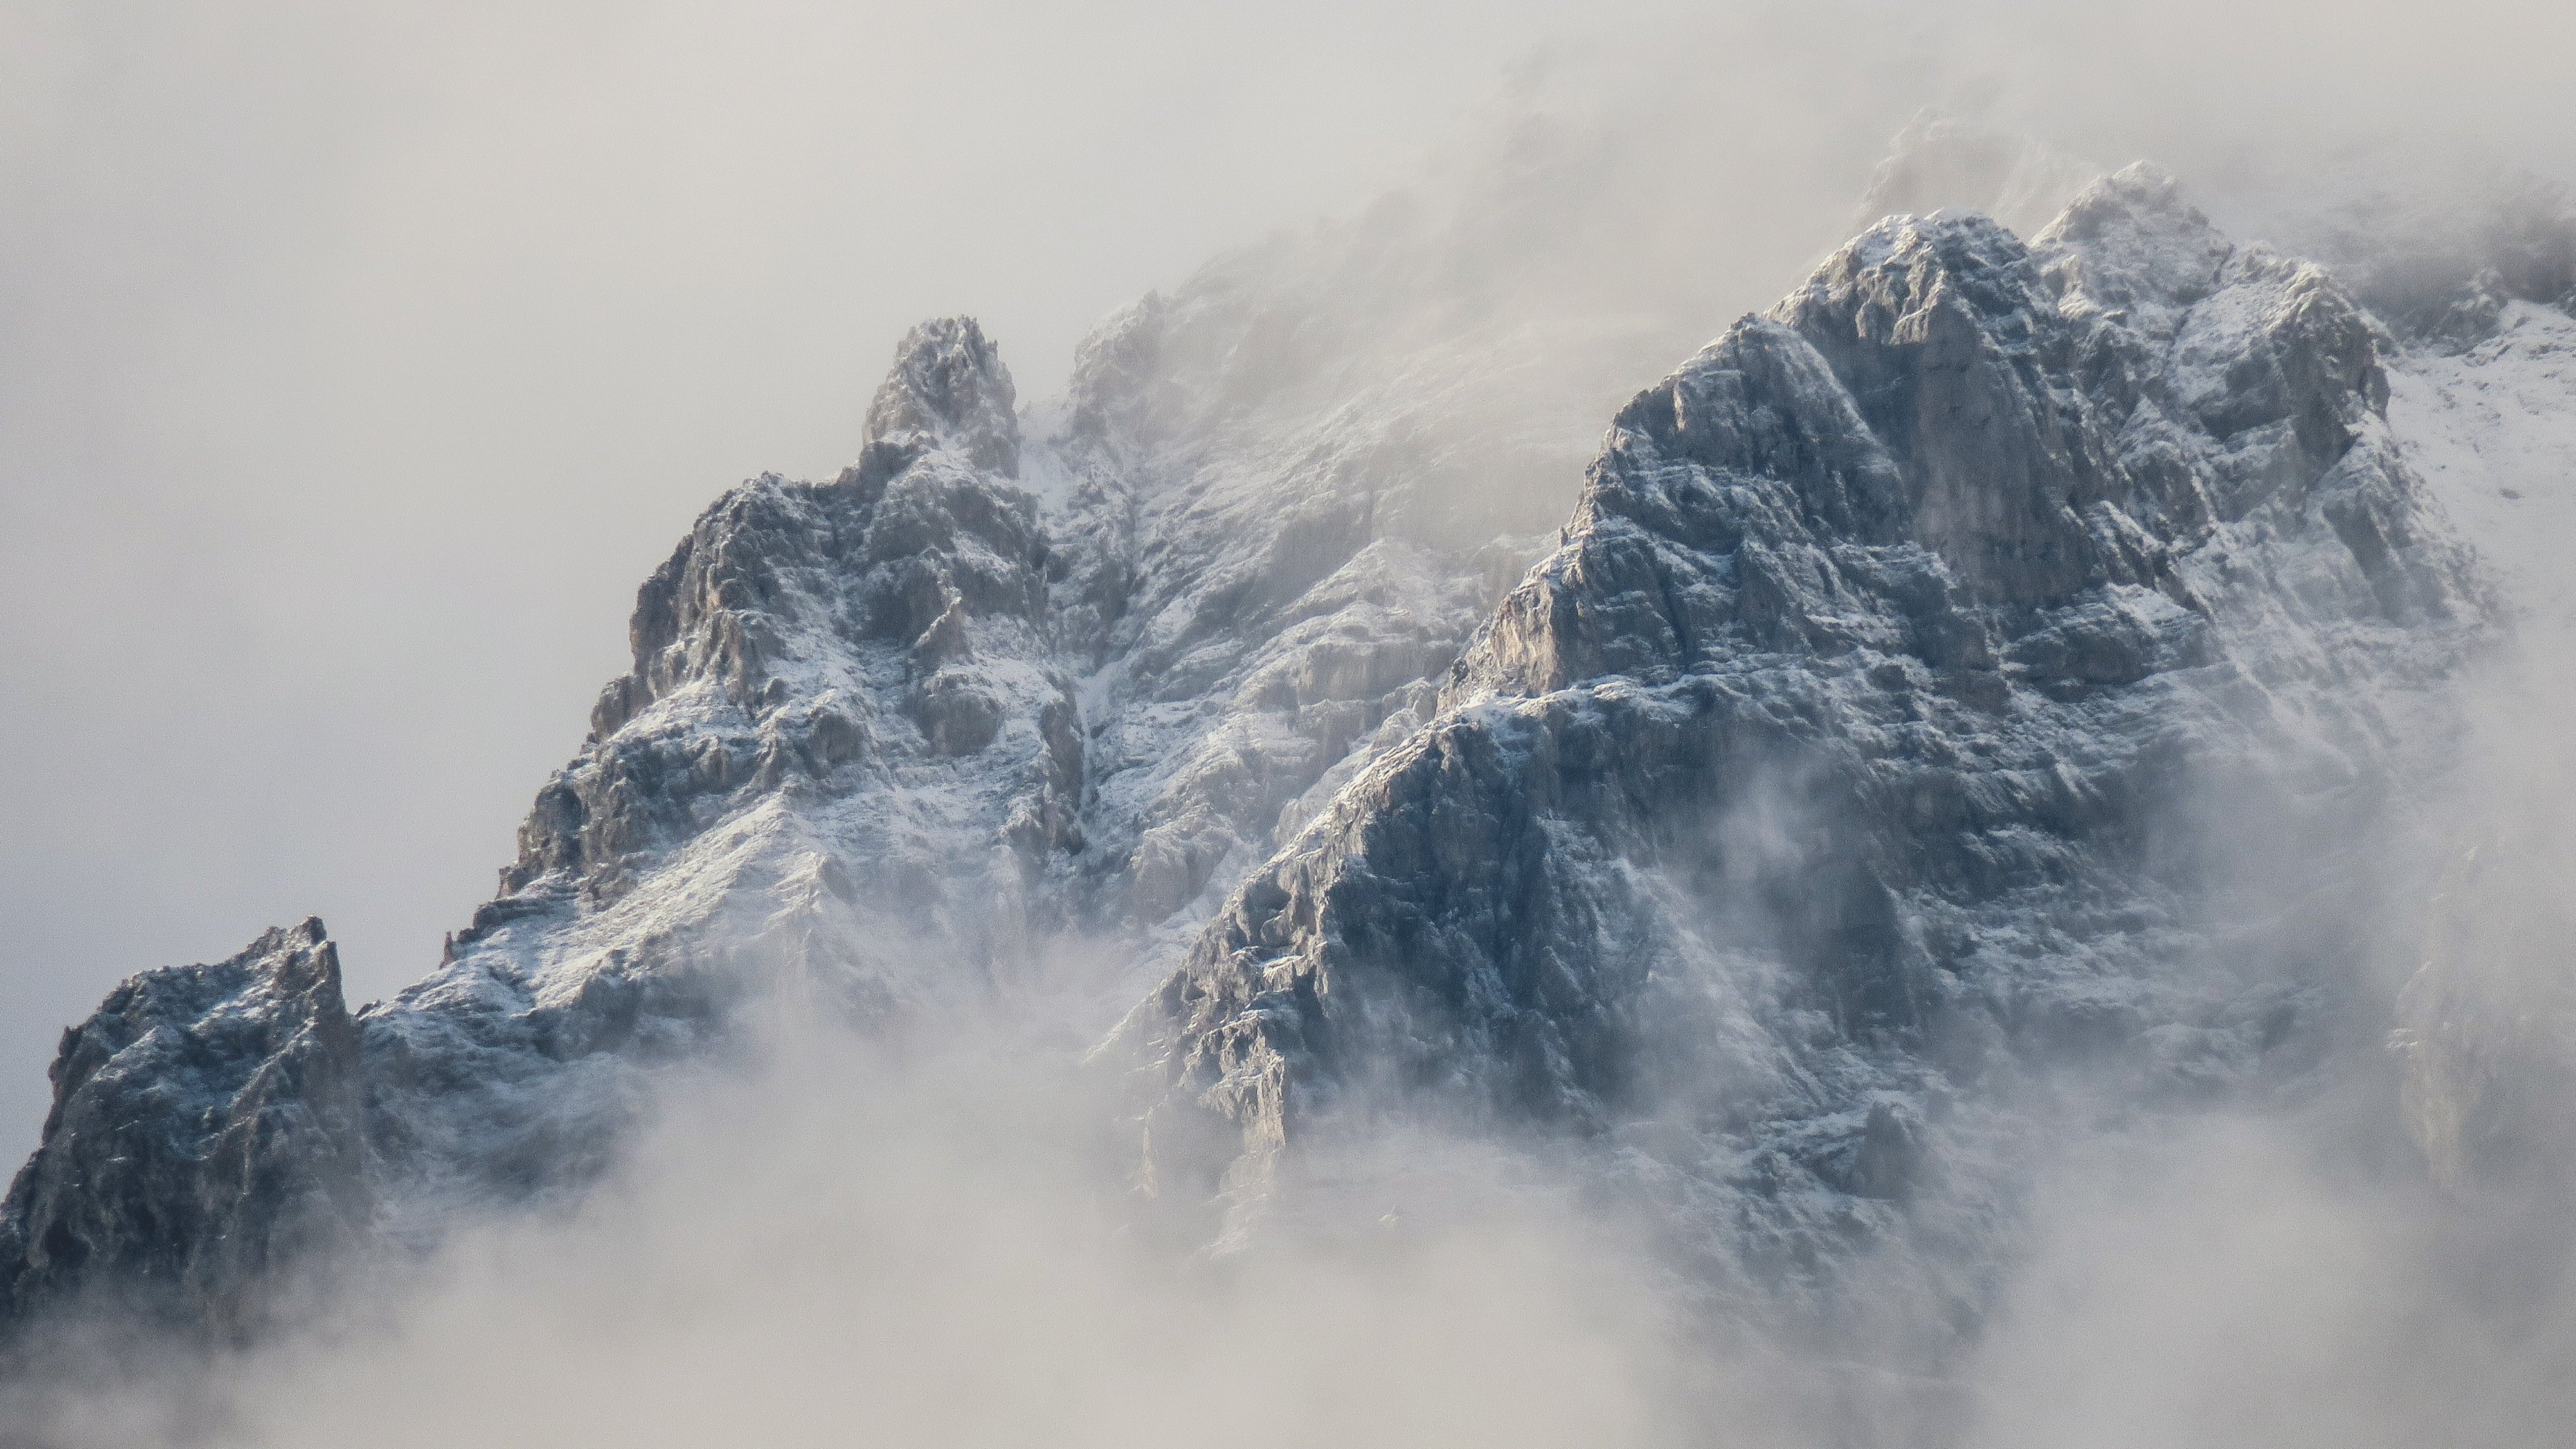 Mountain wallpaper for mobile desktop hd mountains in fog wallpaper voltagebd Gallery